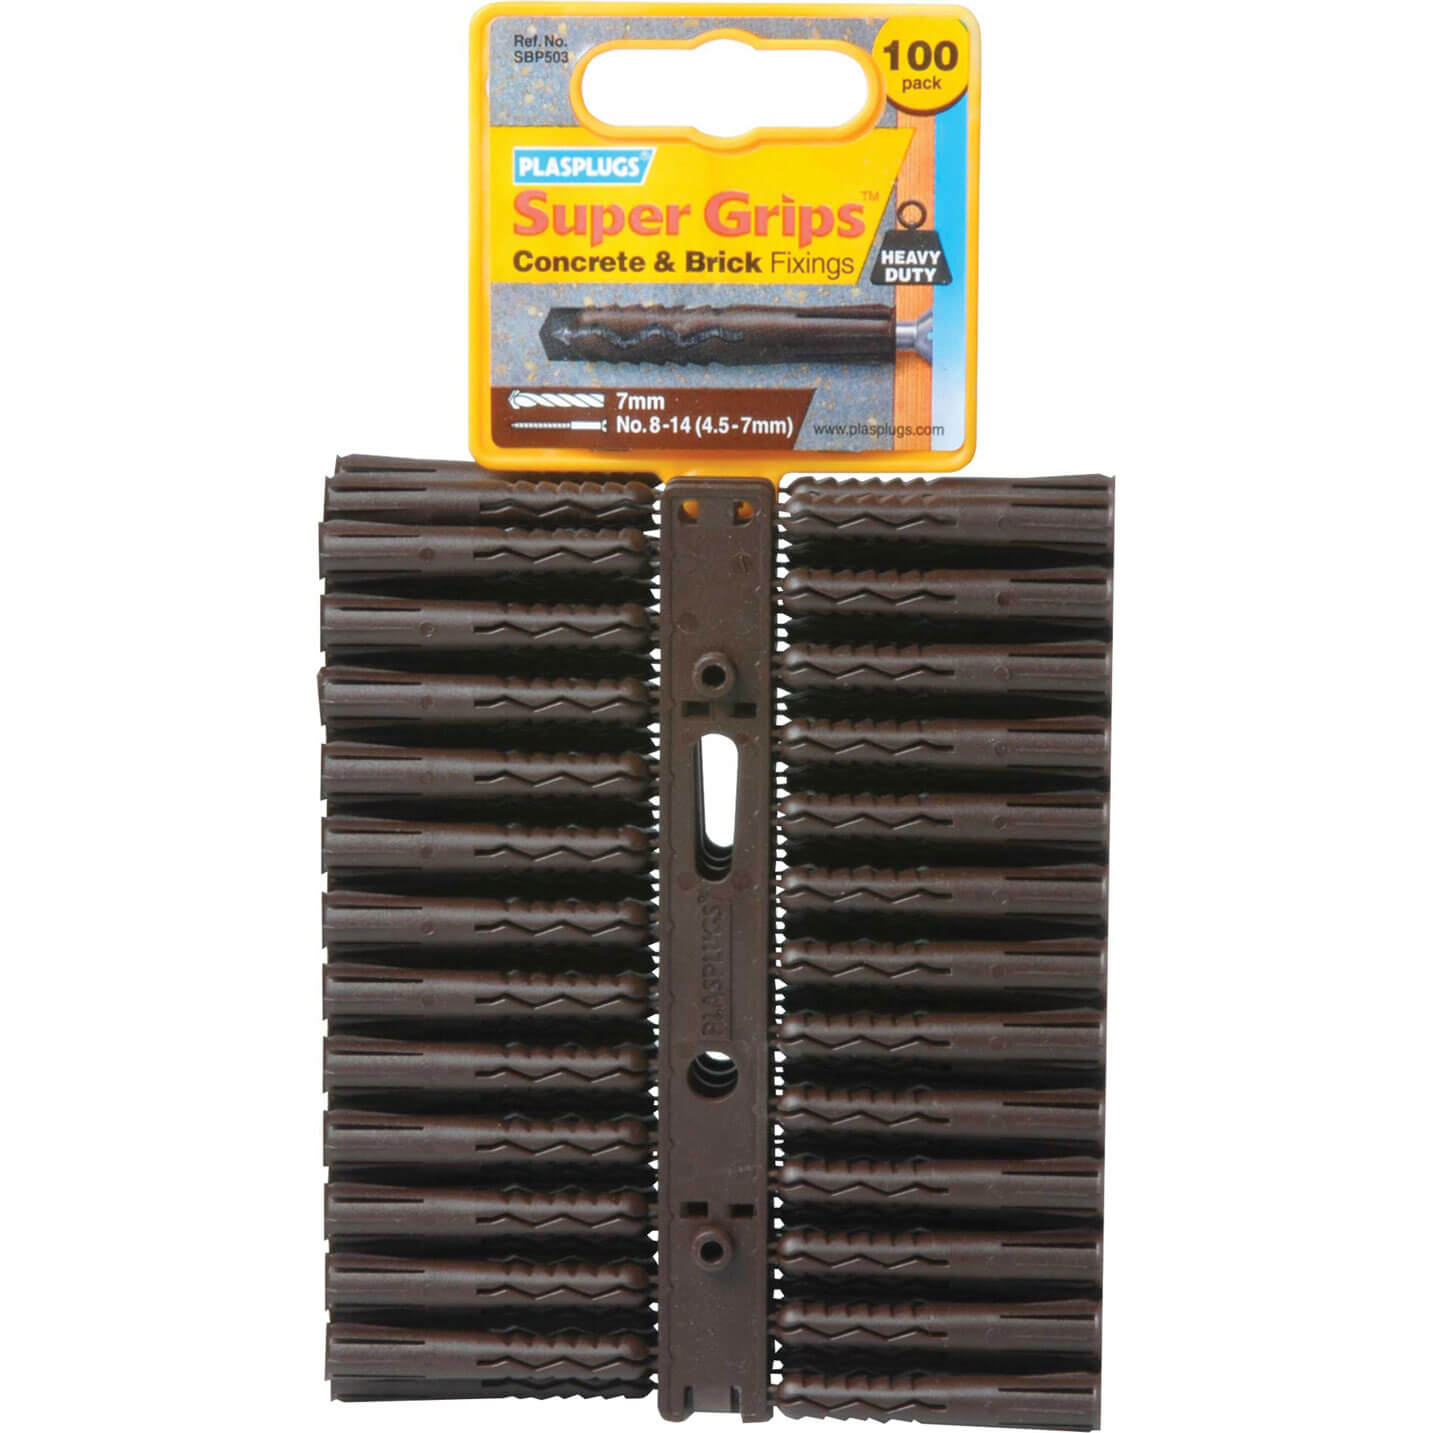 Image of Plasplugs Heavy Duty Super Grips Concrete & Brick Fixings Pack of 100